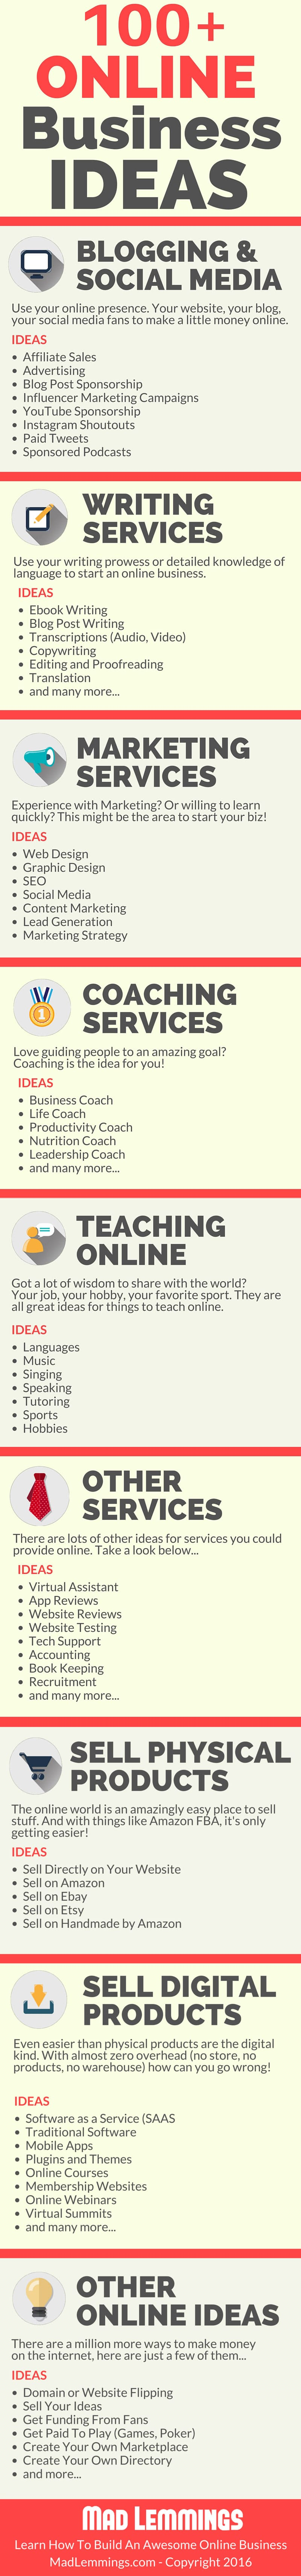 100+ Income Generating Online Business Ideas [Infographic]